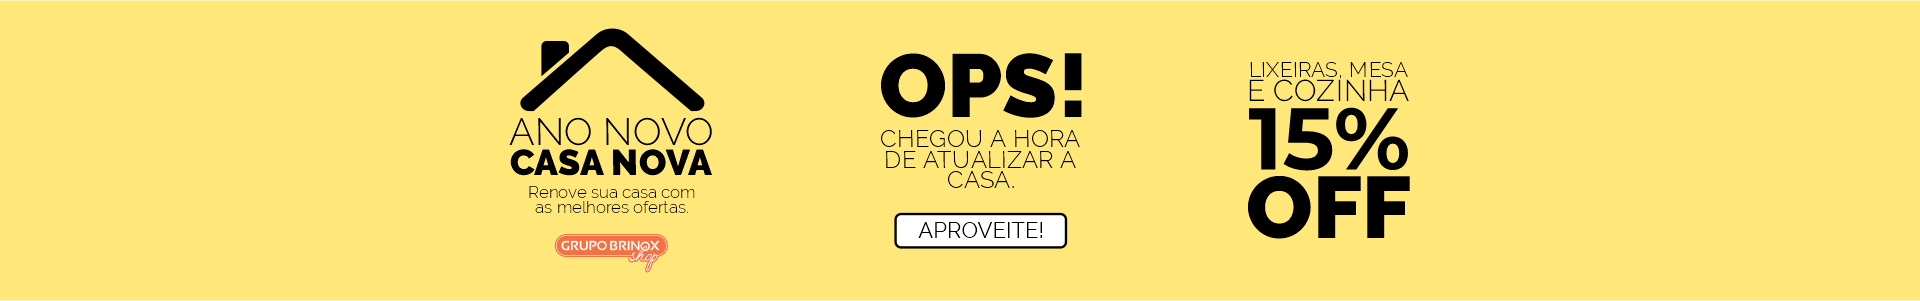 Banner pagcoza ops - Janeiro